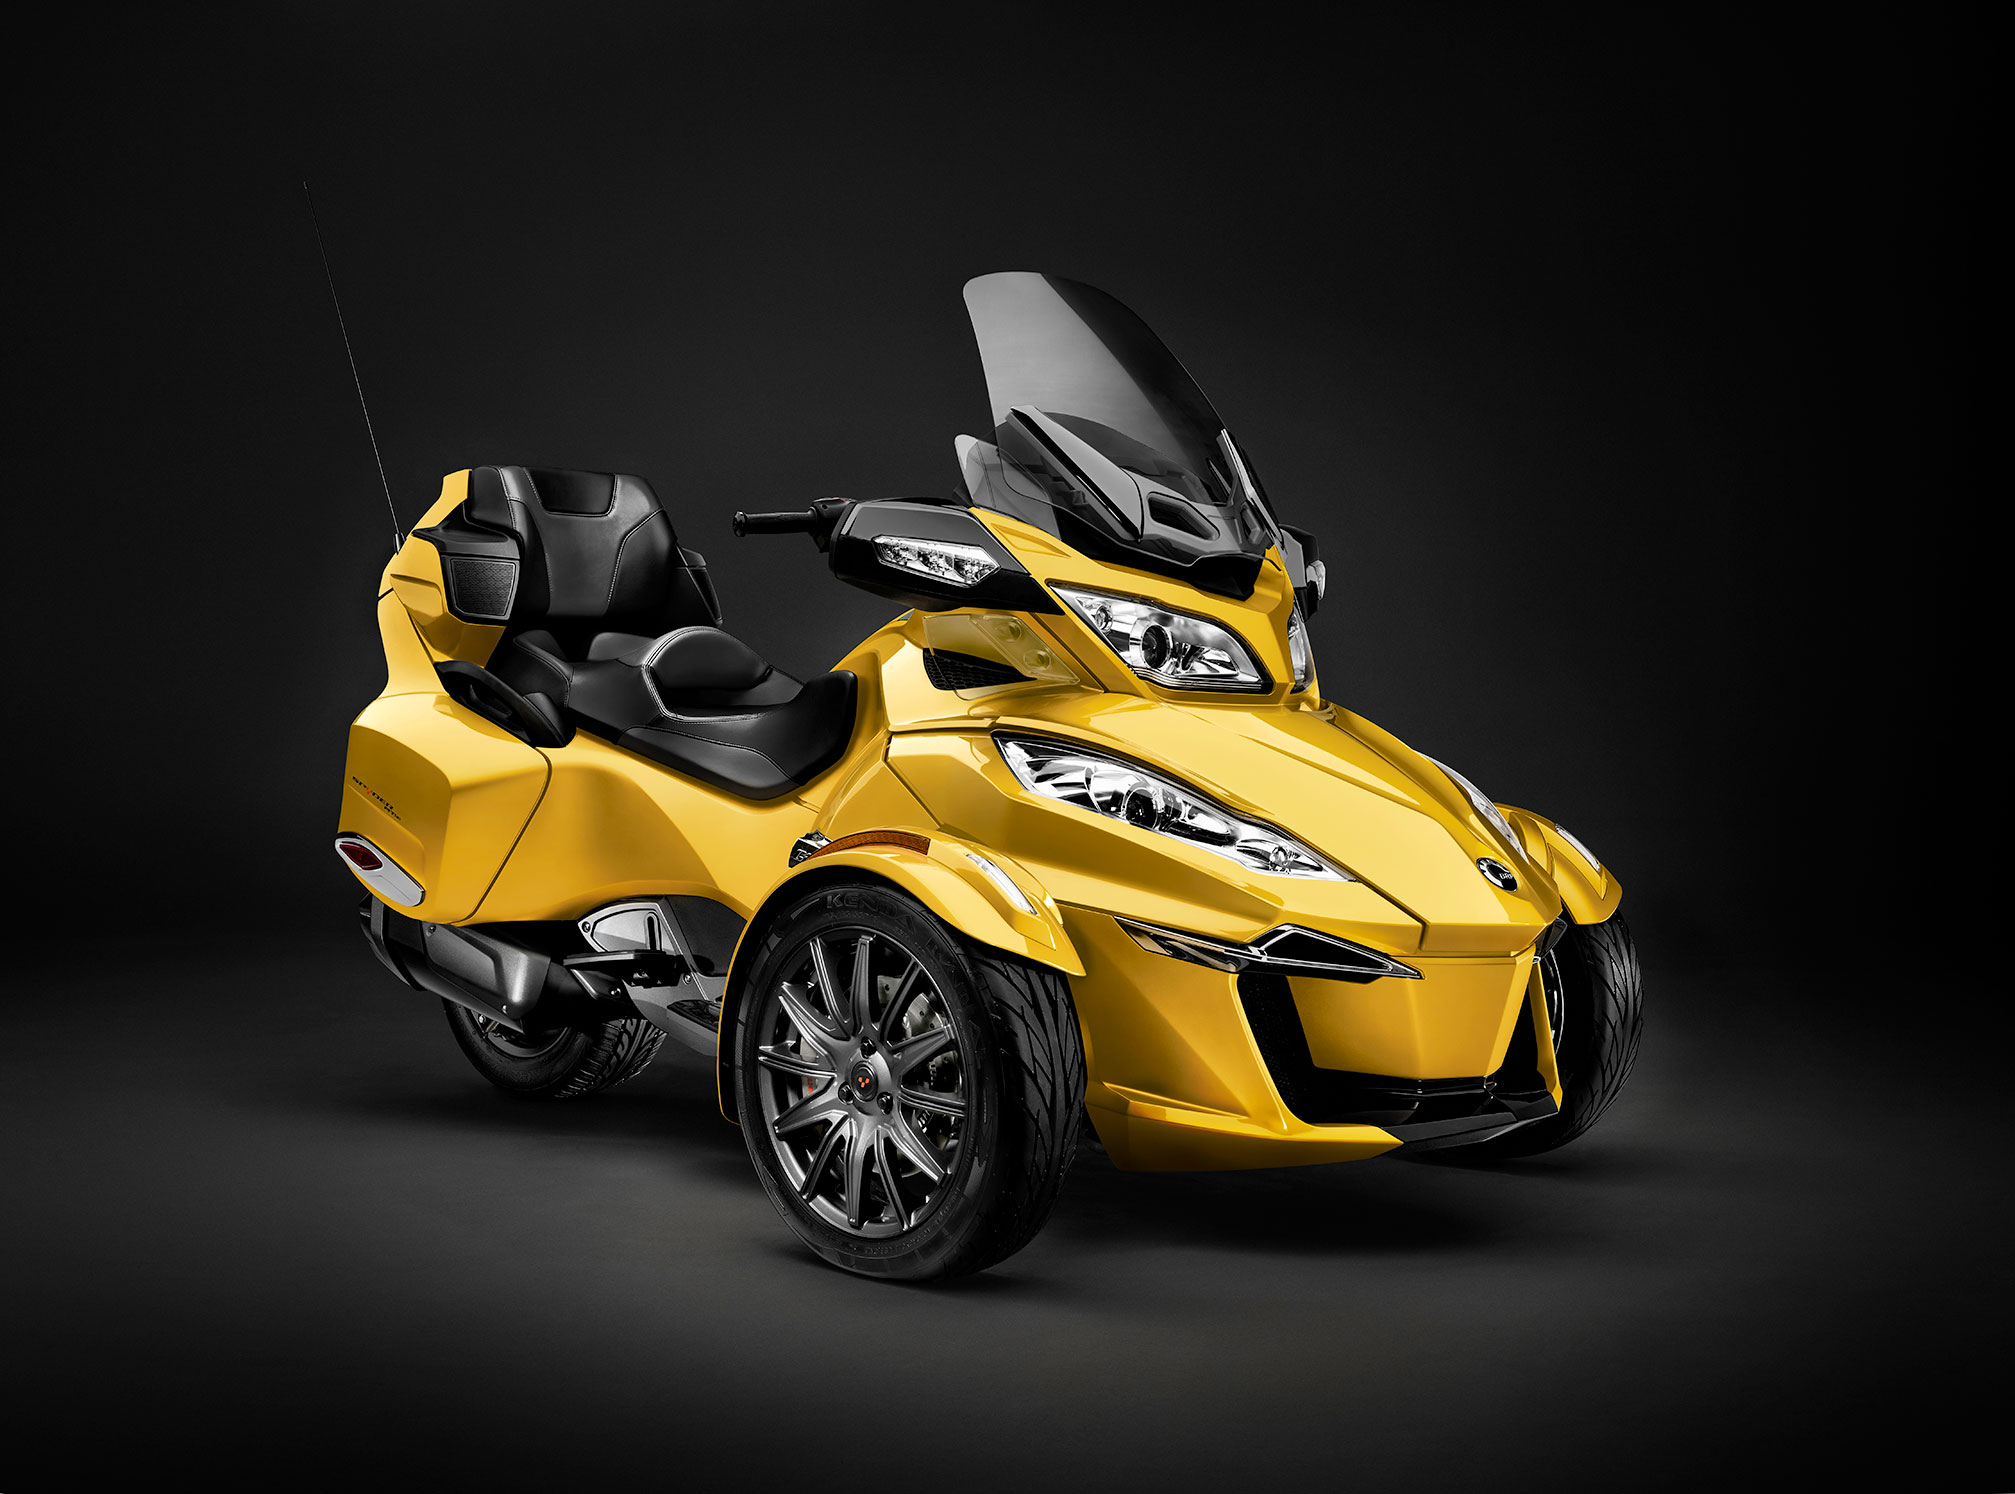 Can am spyder rt shop manual ebook haynes repair manuals 1st edition array house prices for uk price for can am spyder rh housepricesforukkoshikura blogspot com fandeluxe Choice Image